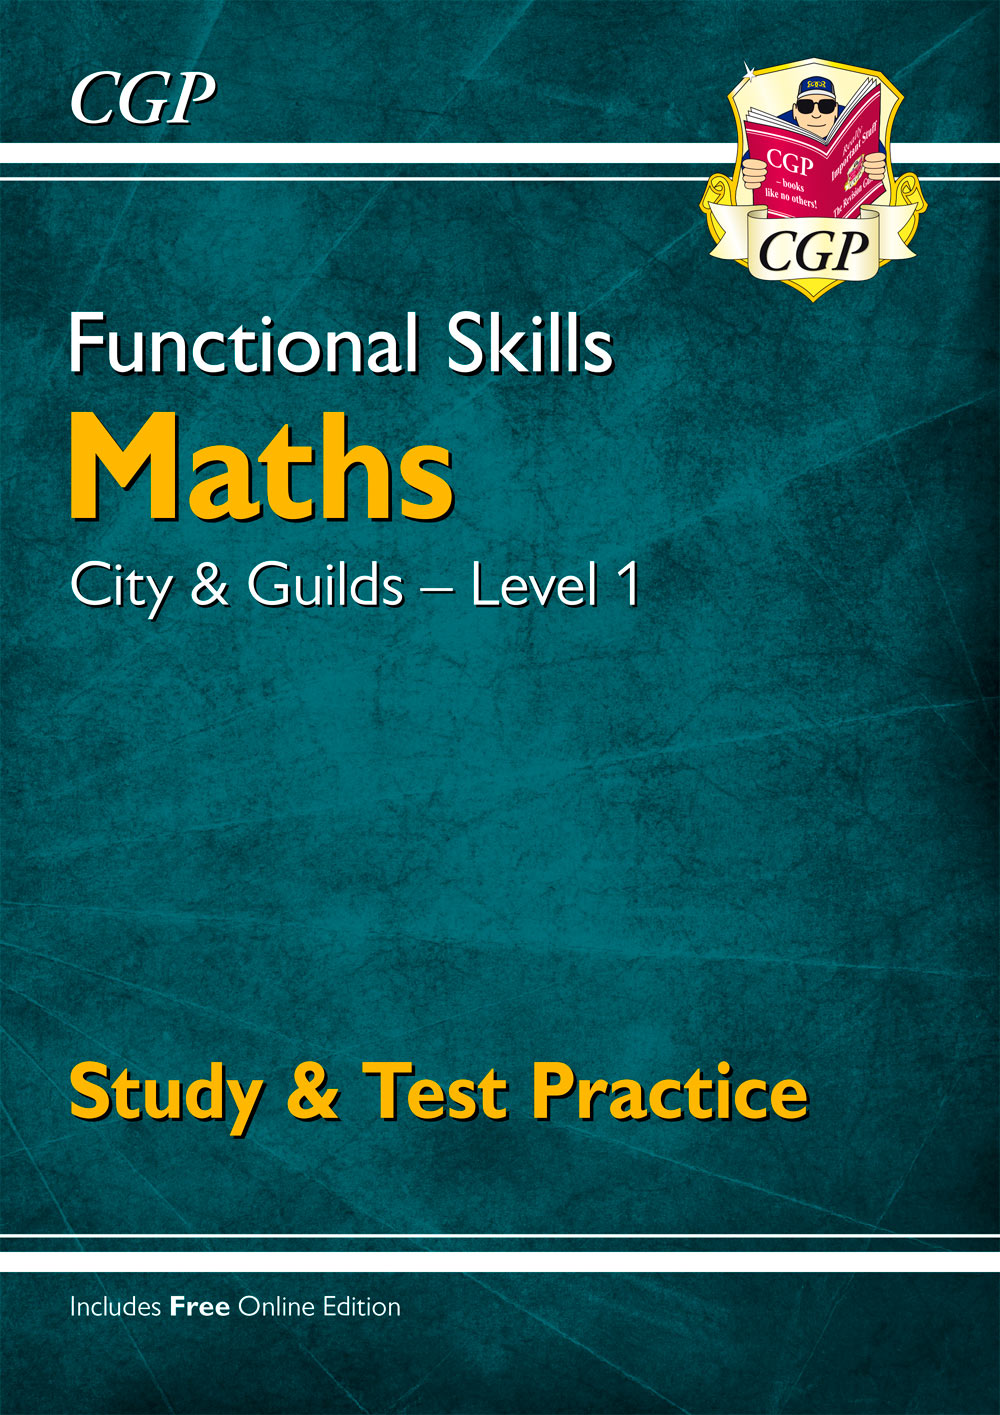 M1CGSRA1 - Functional Skills Maths: City & Guilds Level 1 - Study & Test Practice (for 2021 & beyond